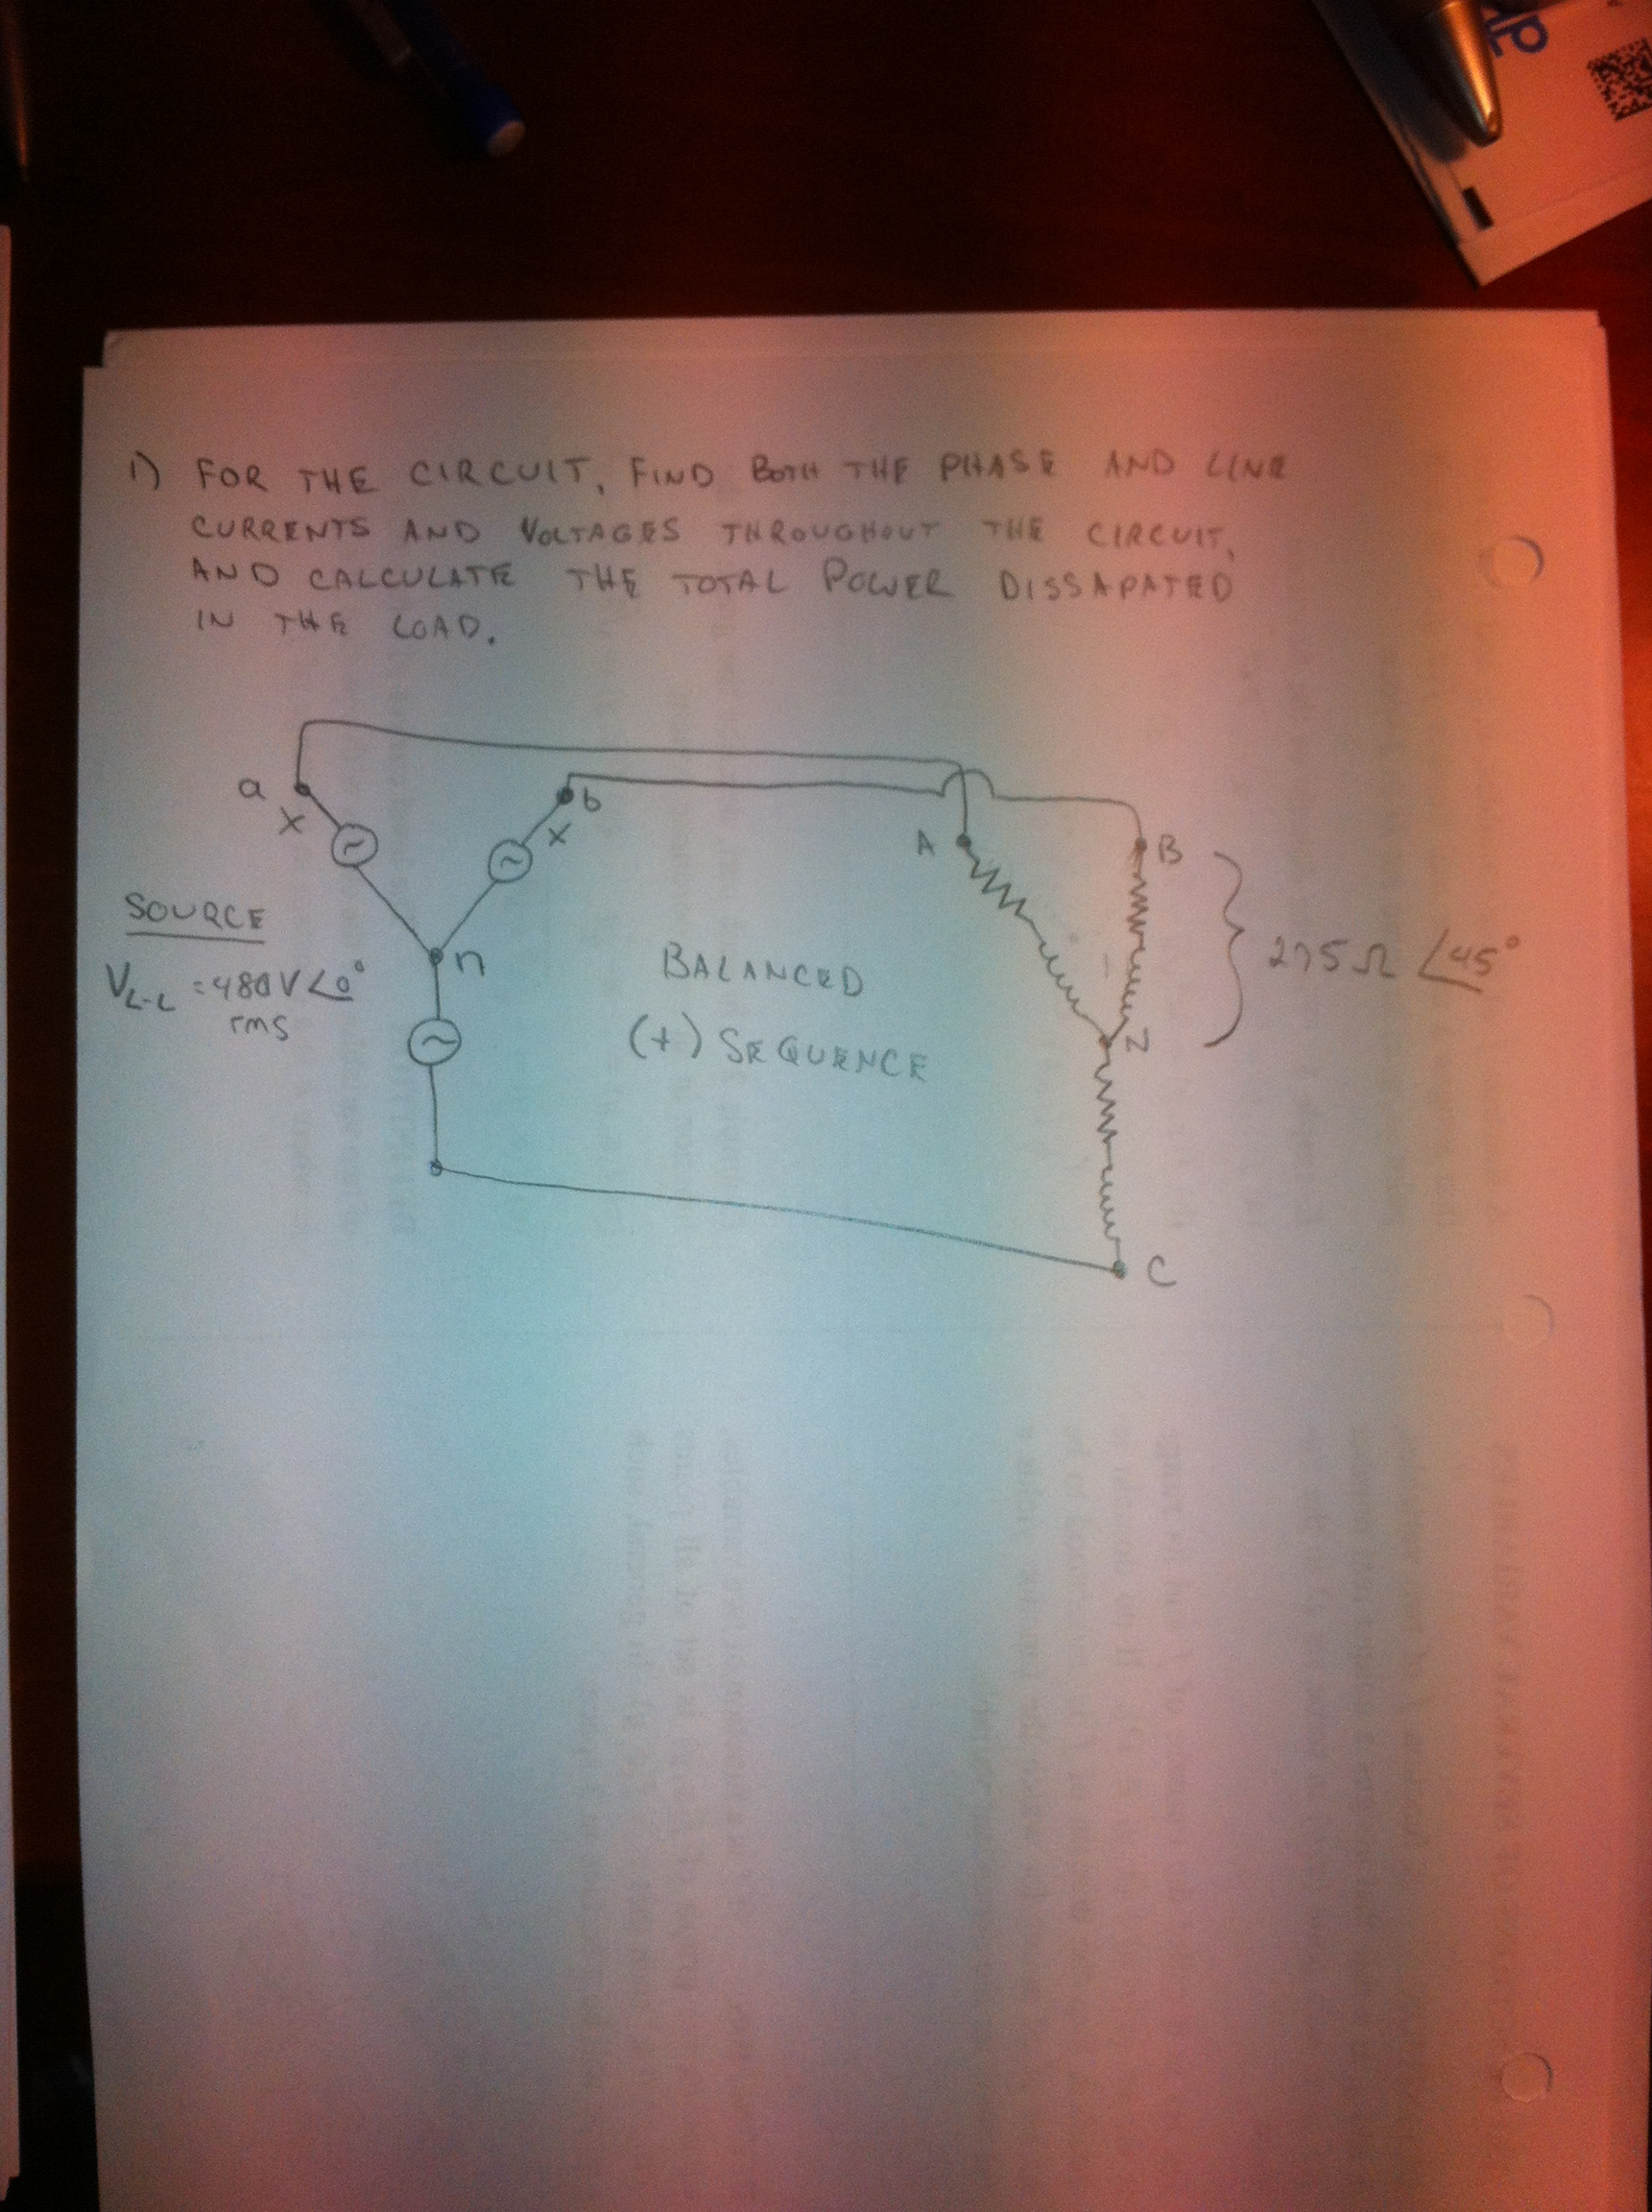 FOR THE CIRCUIT, FIND BOTH THE PHASE AND LINE CURR